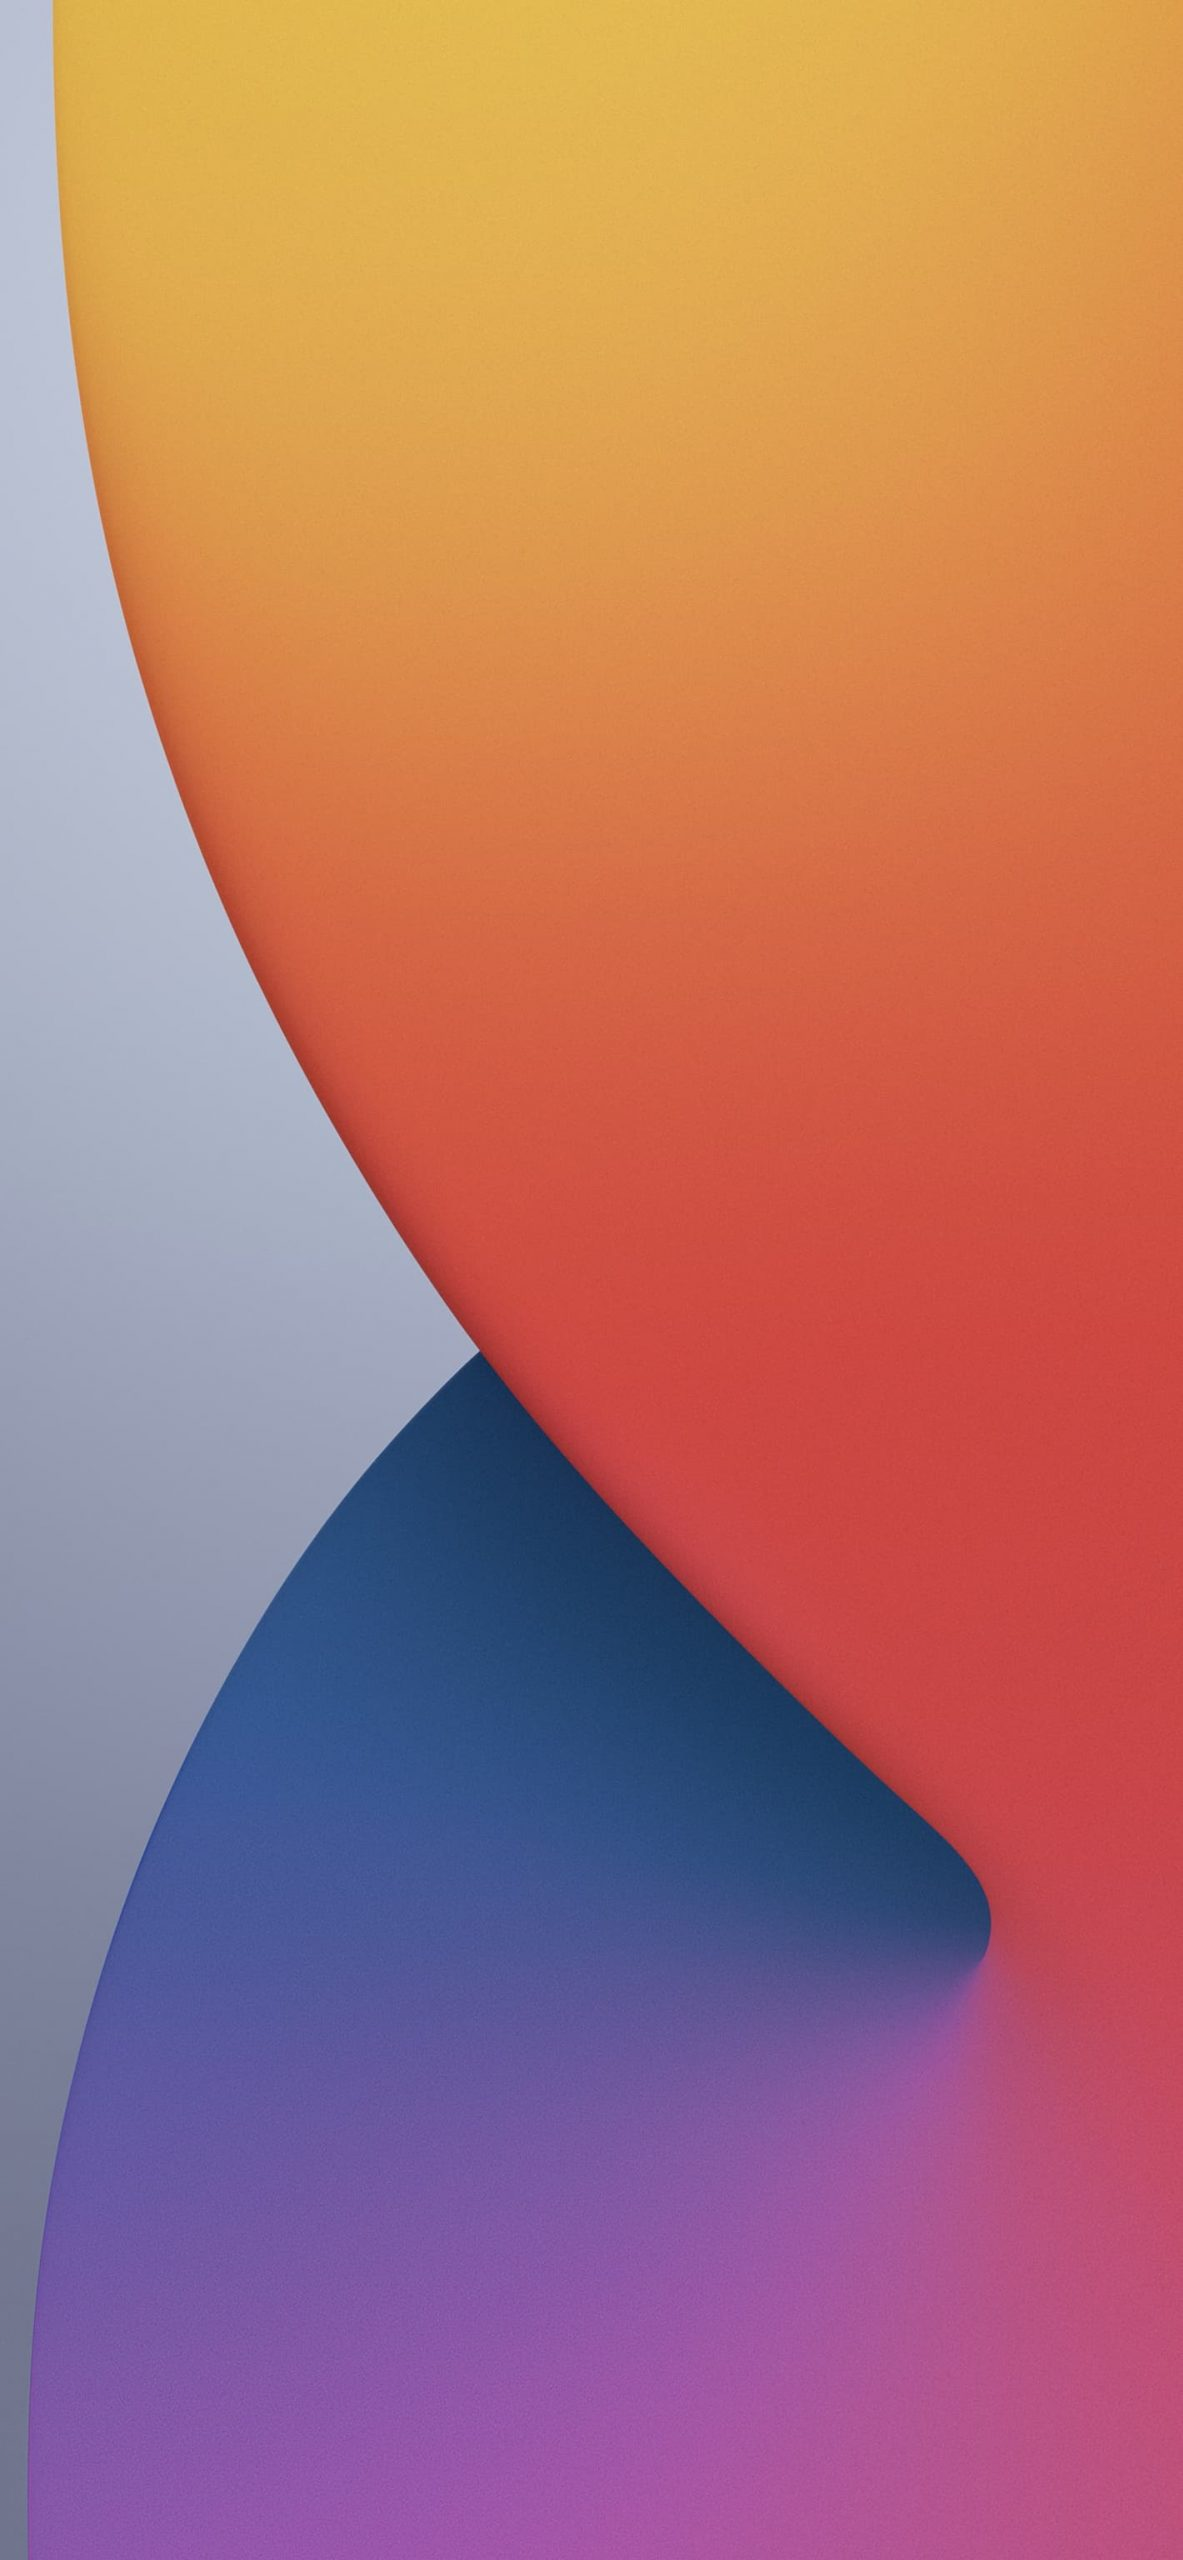 ios 14 wallpapers1 scaled iOS 14 Wallpapers